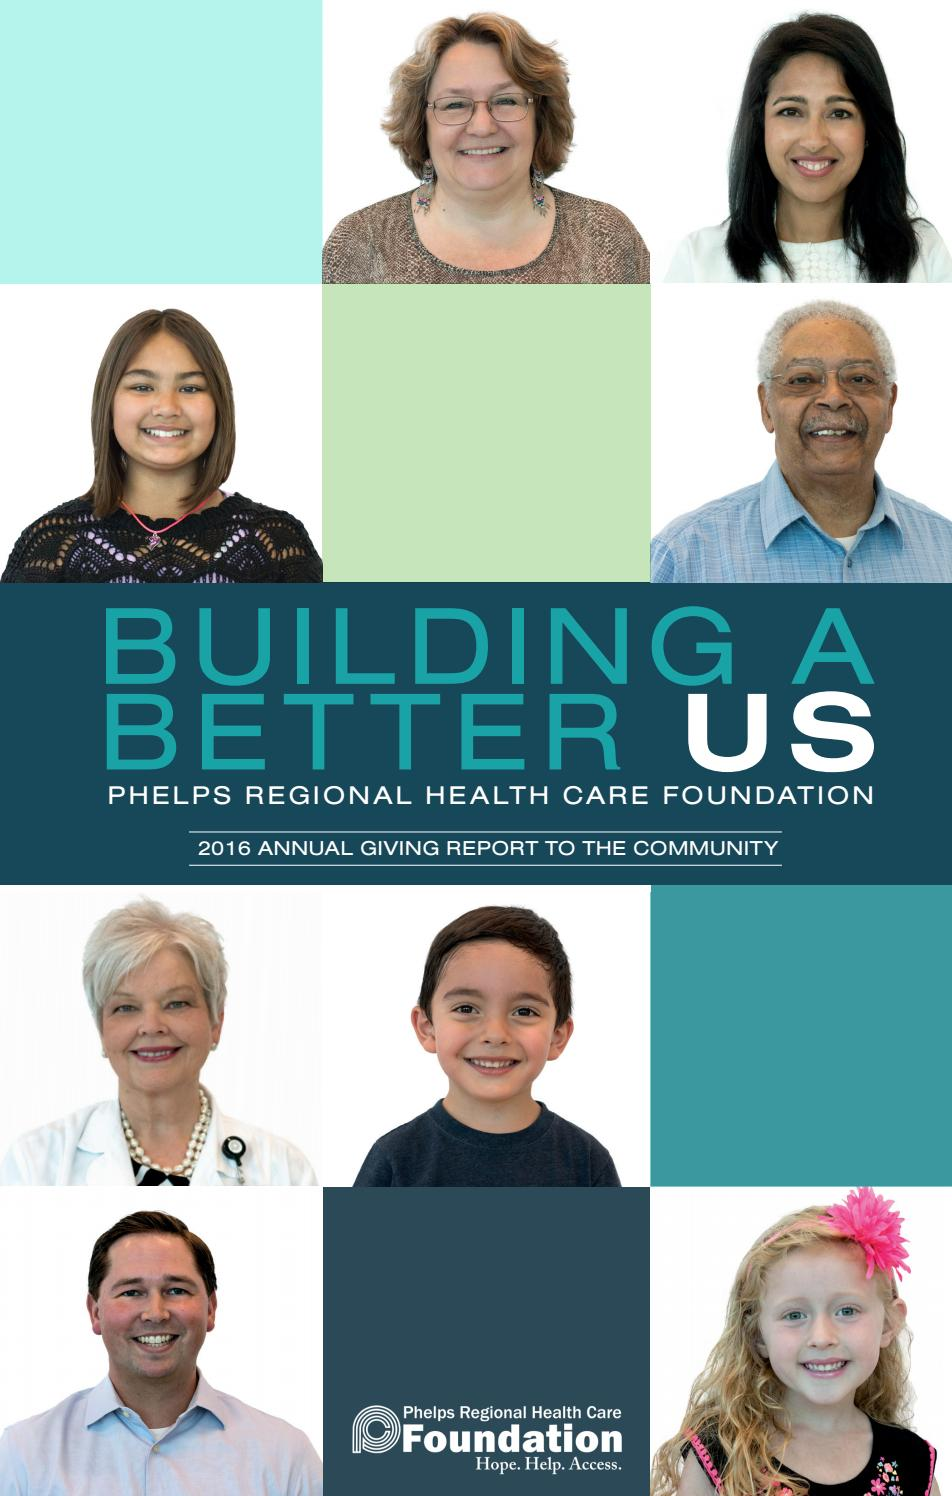 Debra Jo Rupp Boobs Best 2016 phelps regional health care foundation annual report